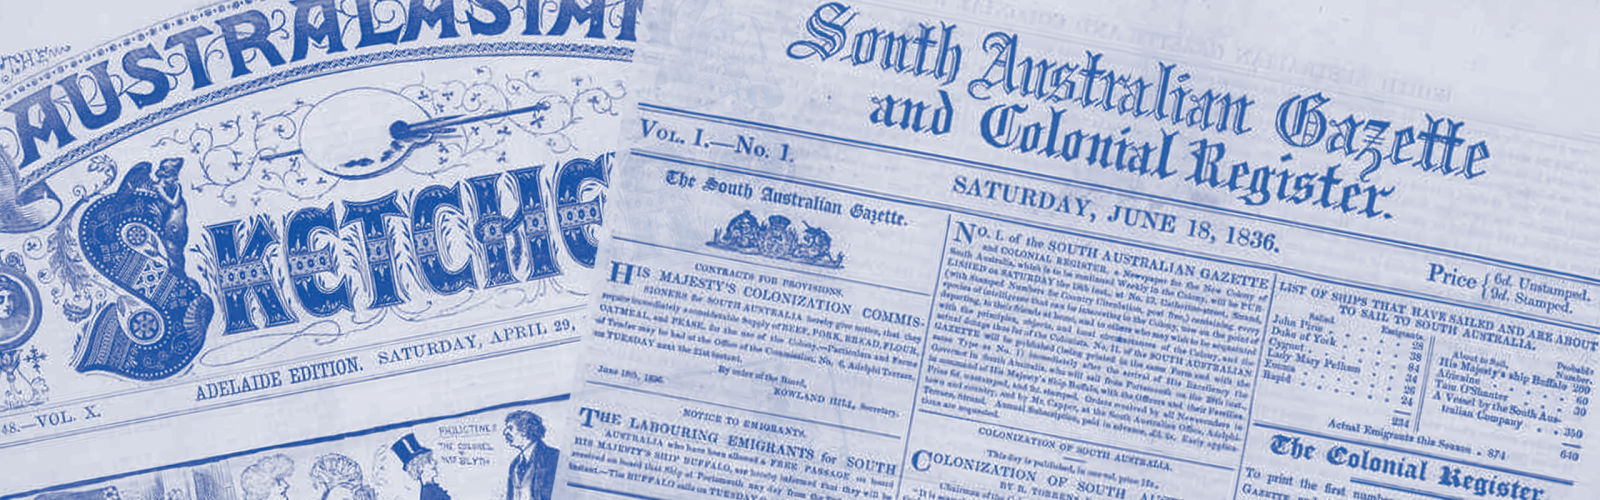 News machup featuring the South Australian Gazette 1836 and the Australasian Sketcher 1882